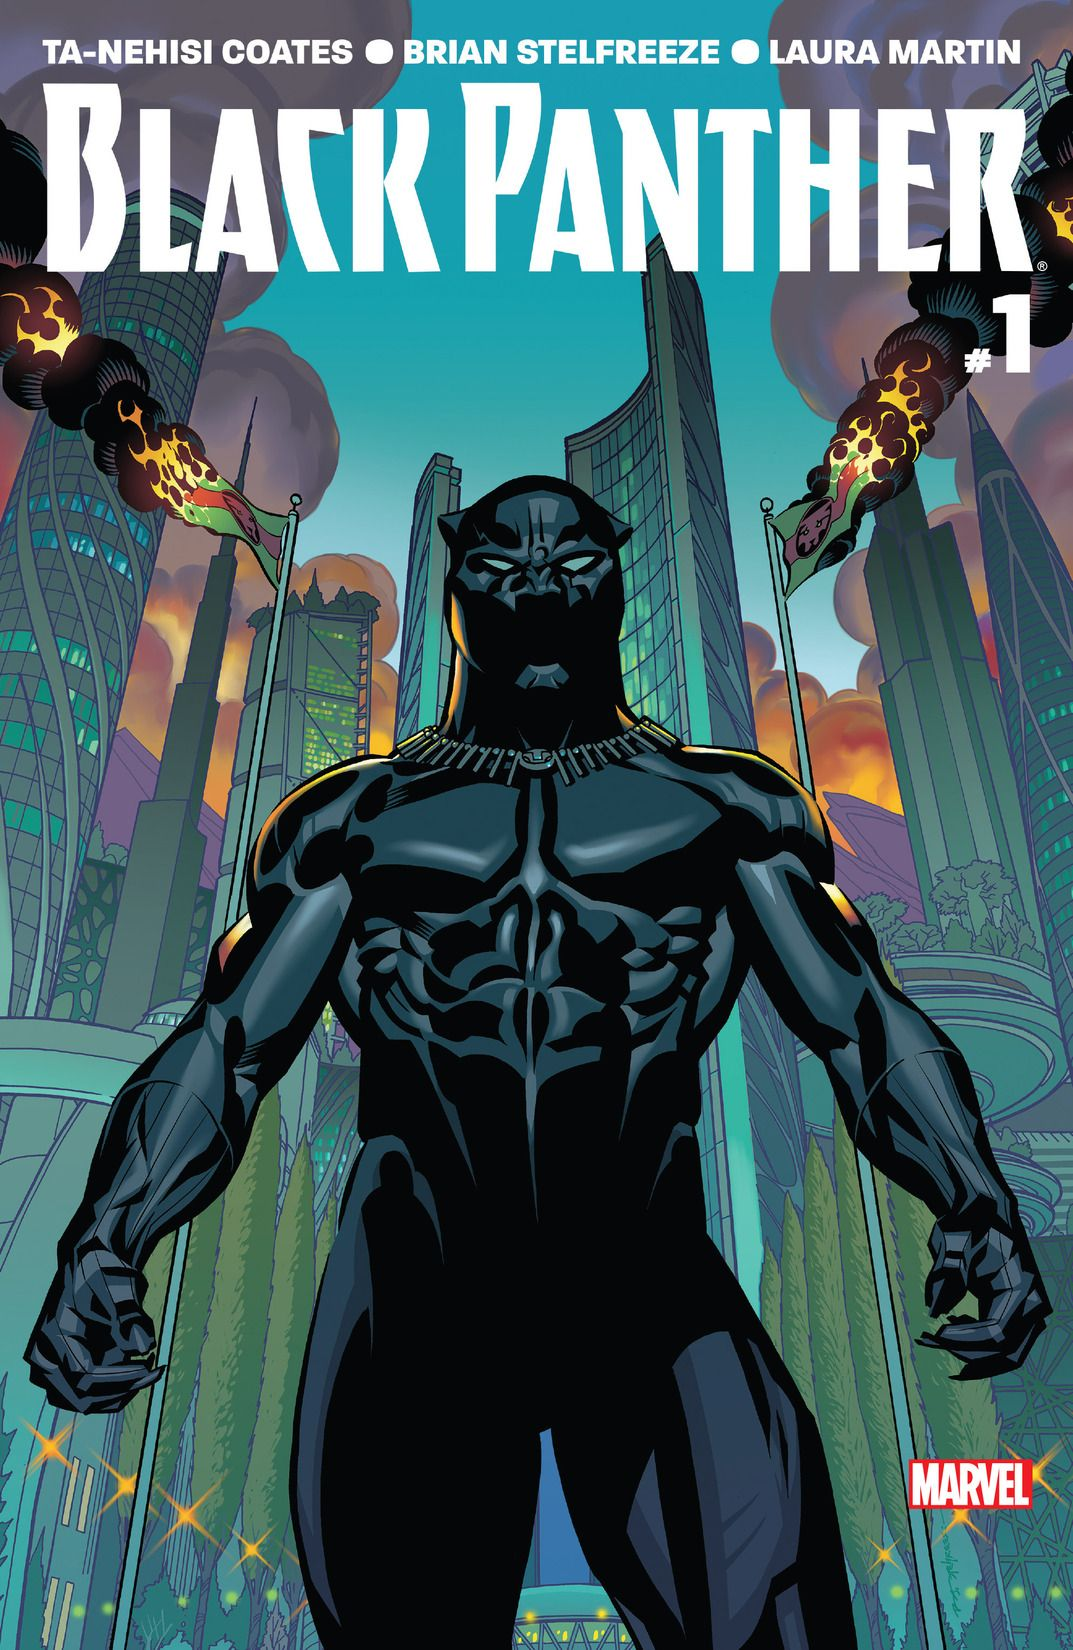 Black Panther (2016) #1 Cover